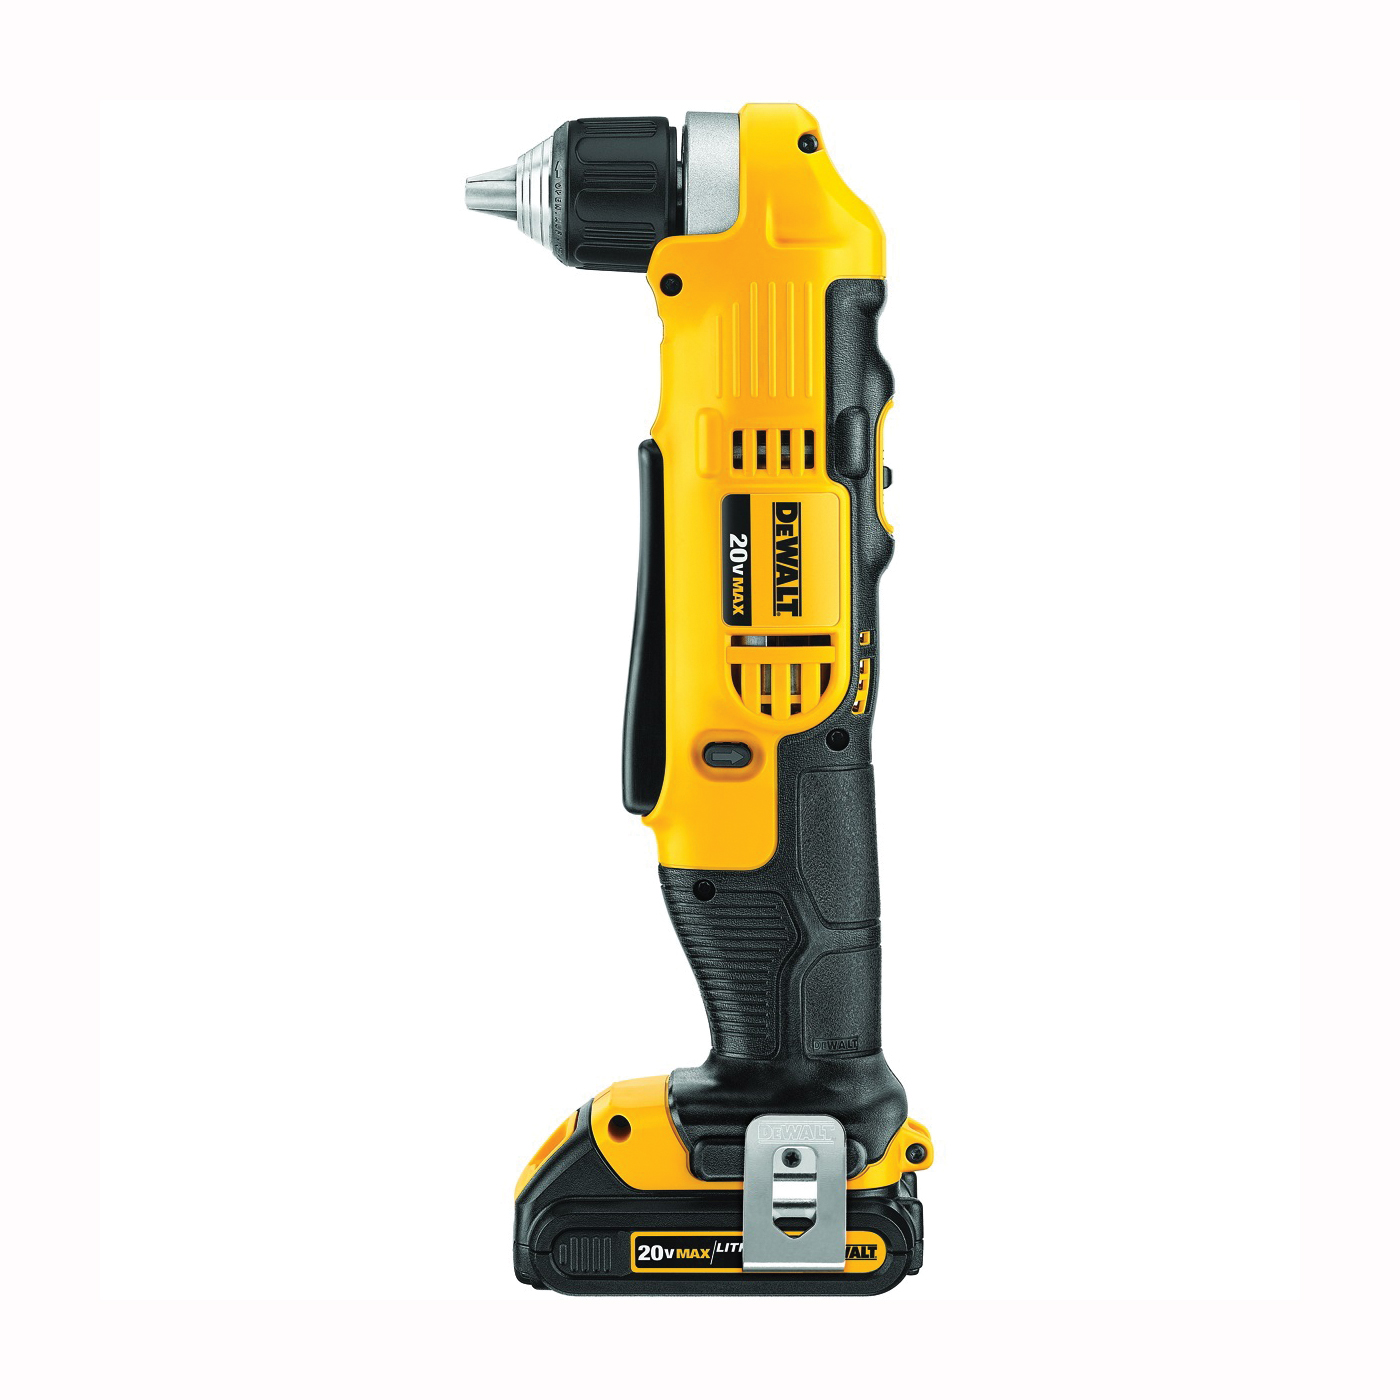 Picture of DeWALT DCD740C1 Drill/Driver Kit, Kit, 20 V Battery, 3/8 in Chuck, Keyless, Ratcheting Chuck, Battery Included: Yes